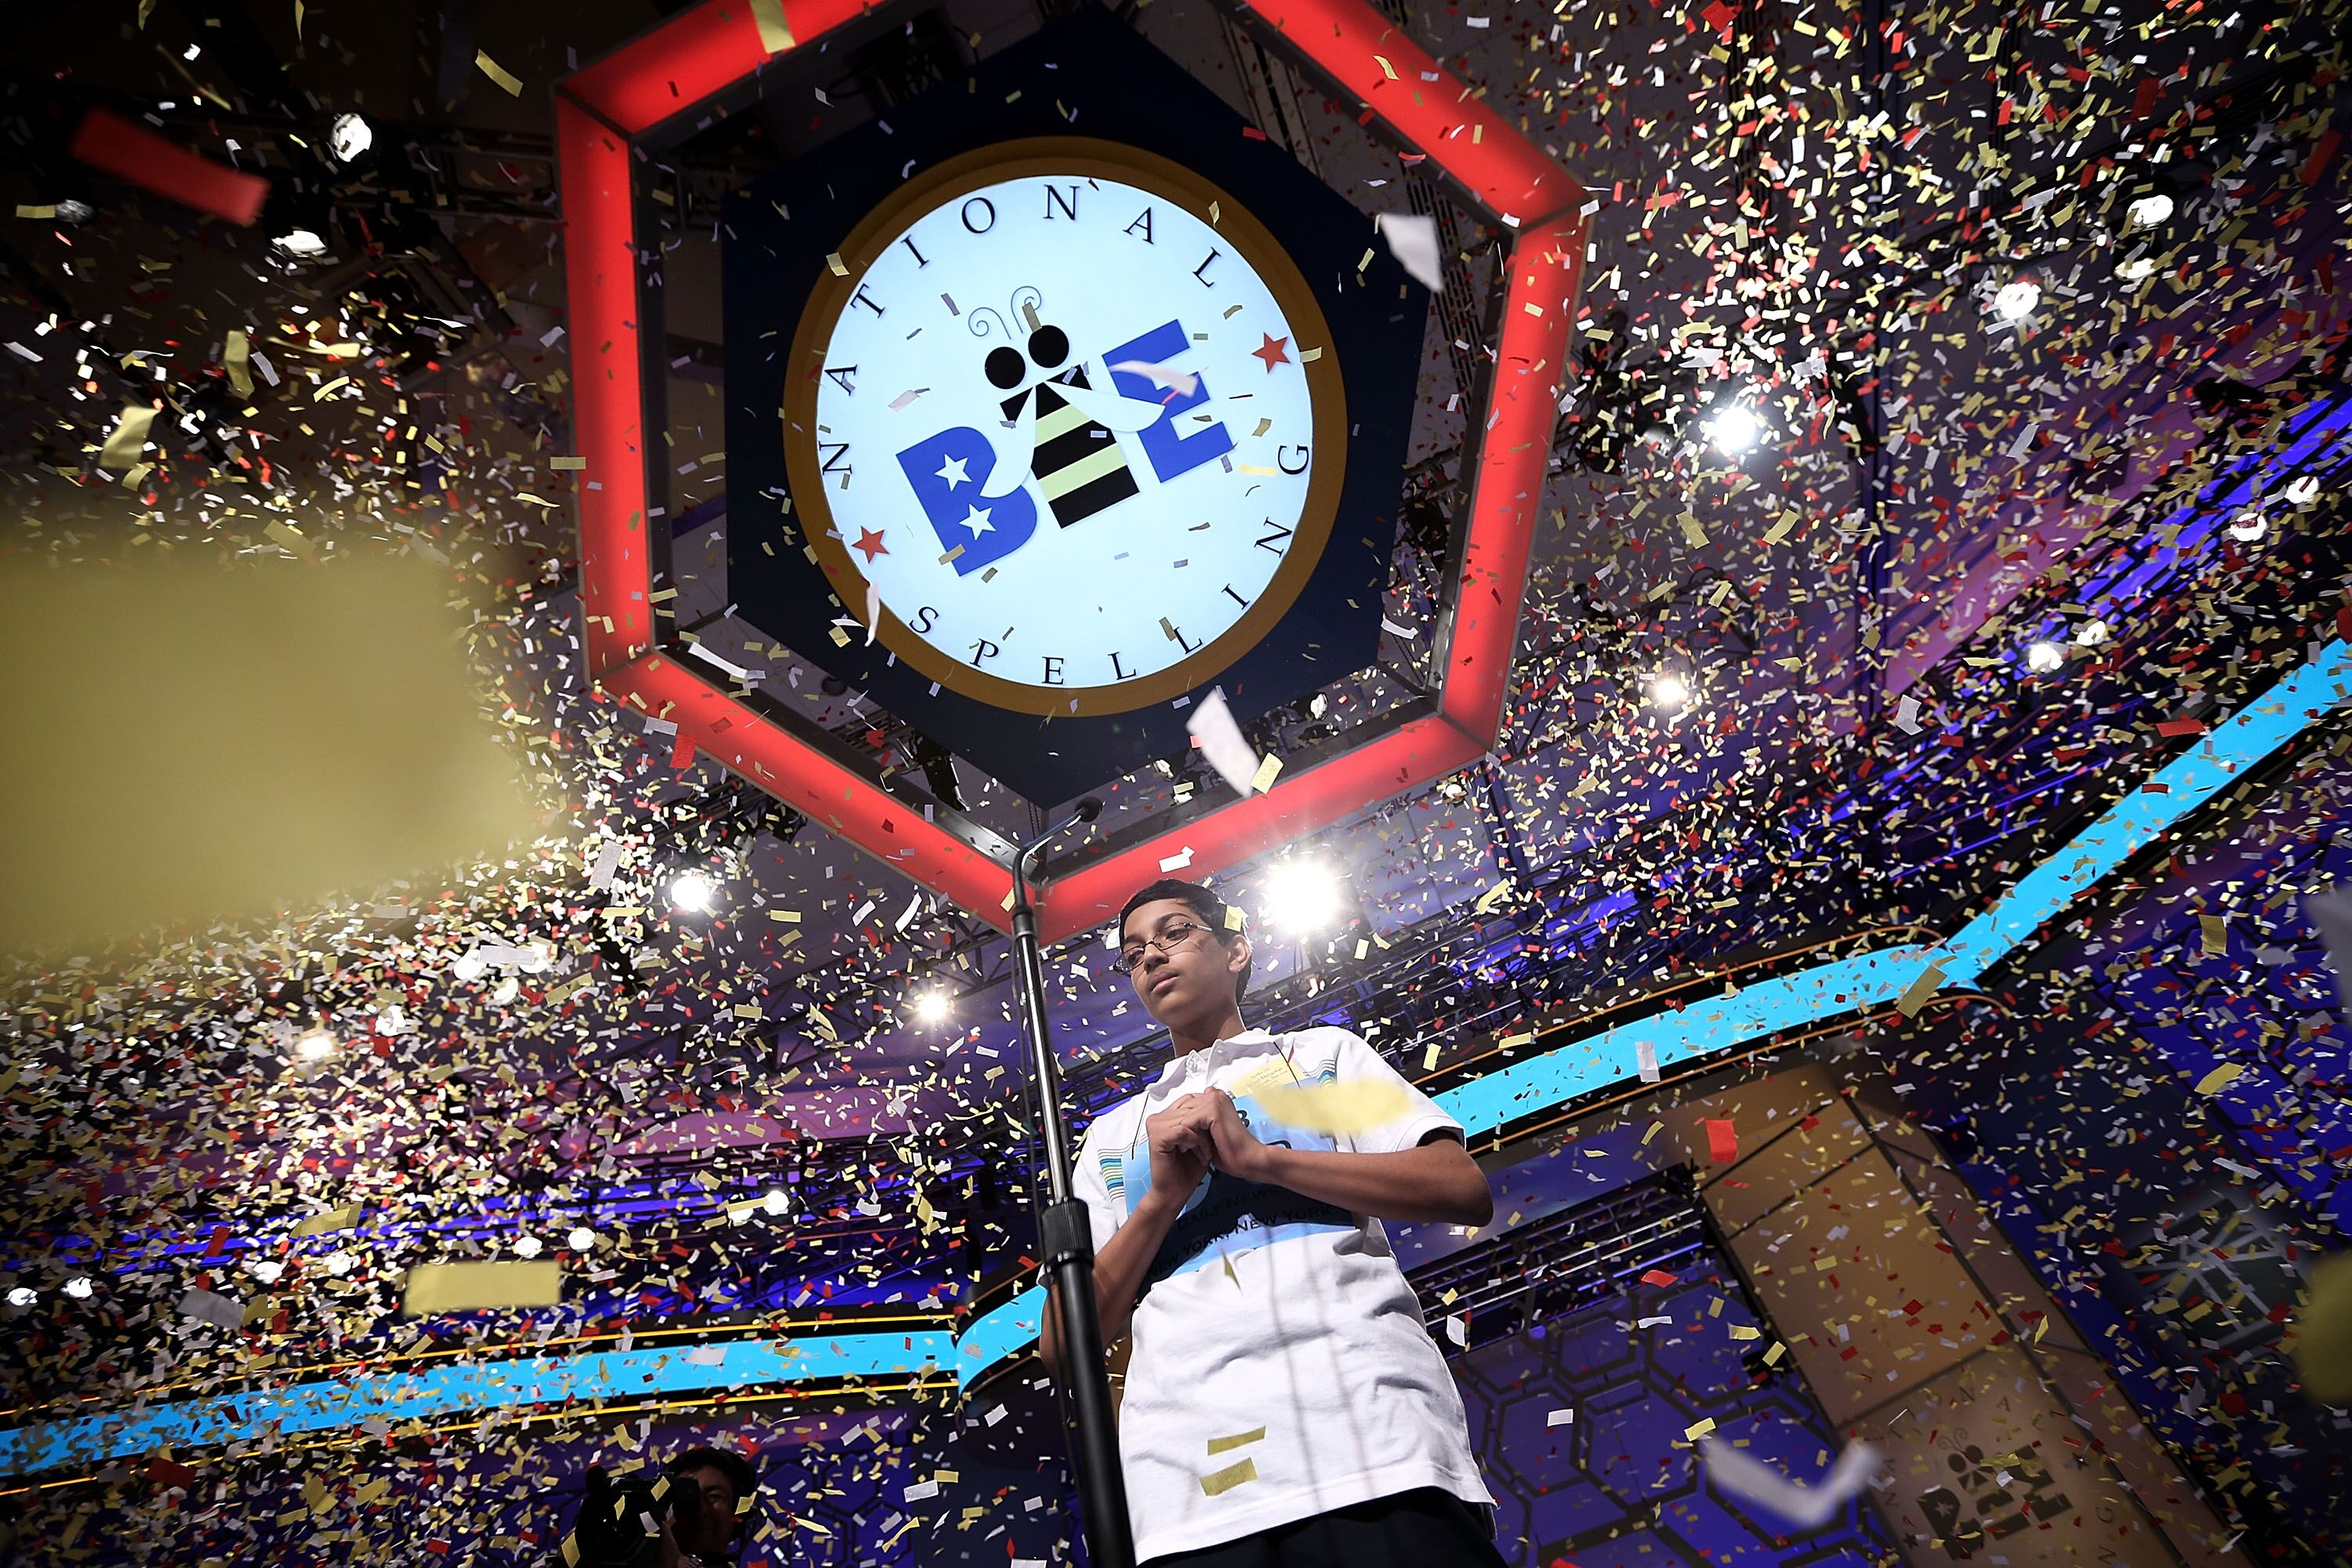 Confetti falls over Arvind Mahankali of Bayside Hills, New York after the finals of the 2013 Scripps National Spelling Bee May 30, 2013 at Gaylord National Resort, Maryland | Photo: Getty Images